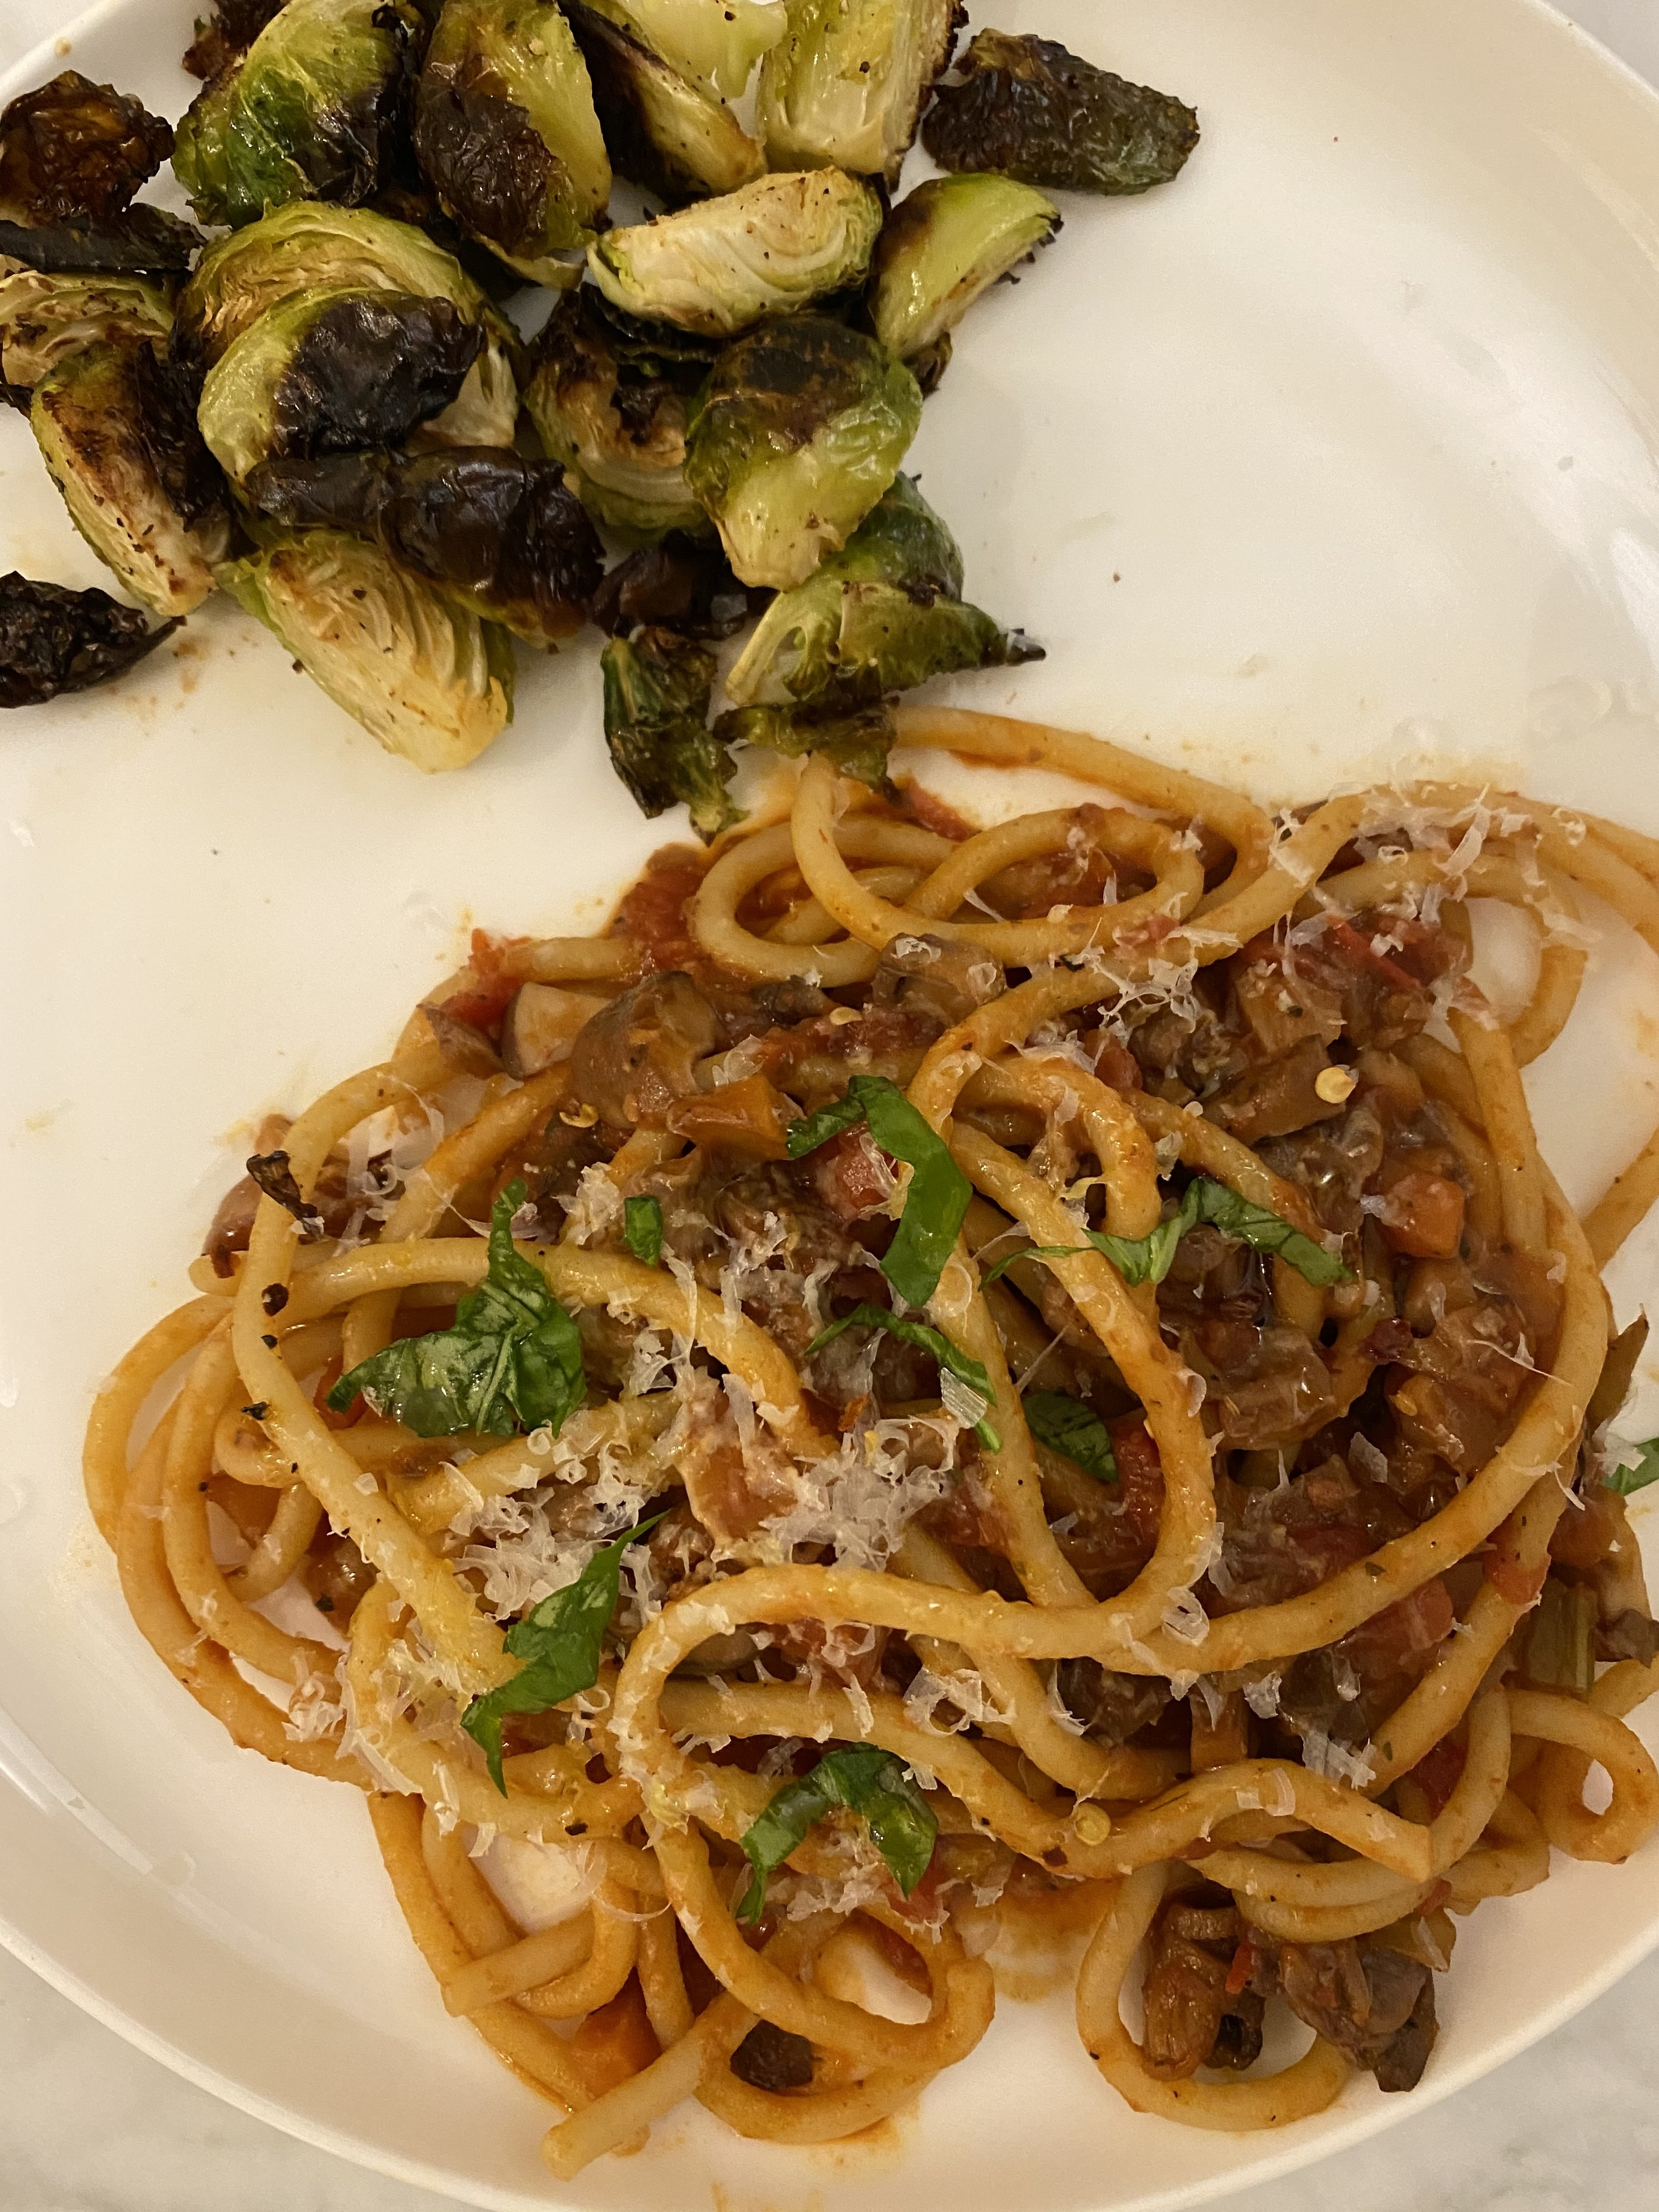 A plate of spaghetti in mushroom Bolognese sauce and a side of roasted Brussels sprouts.